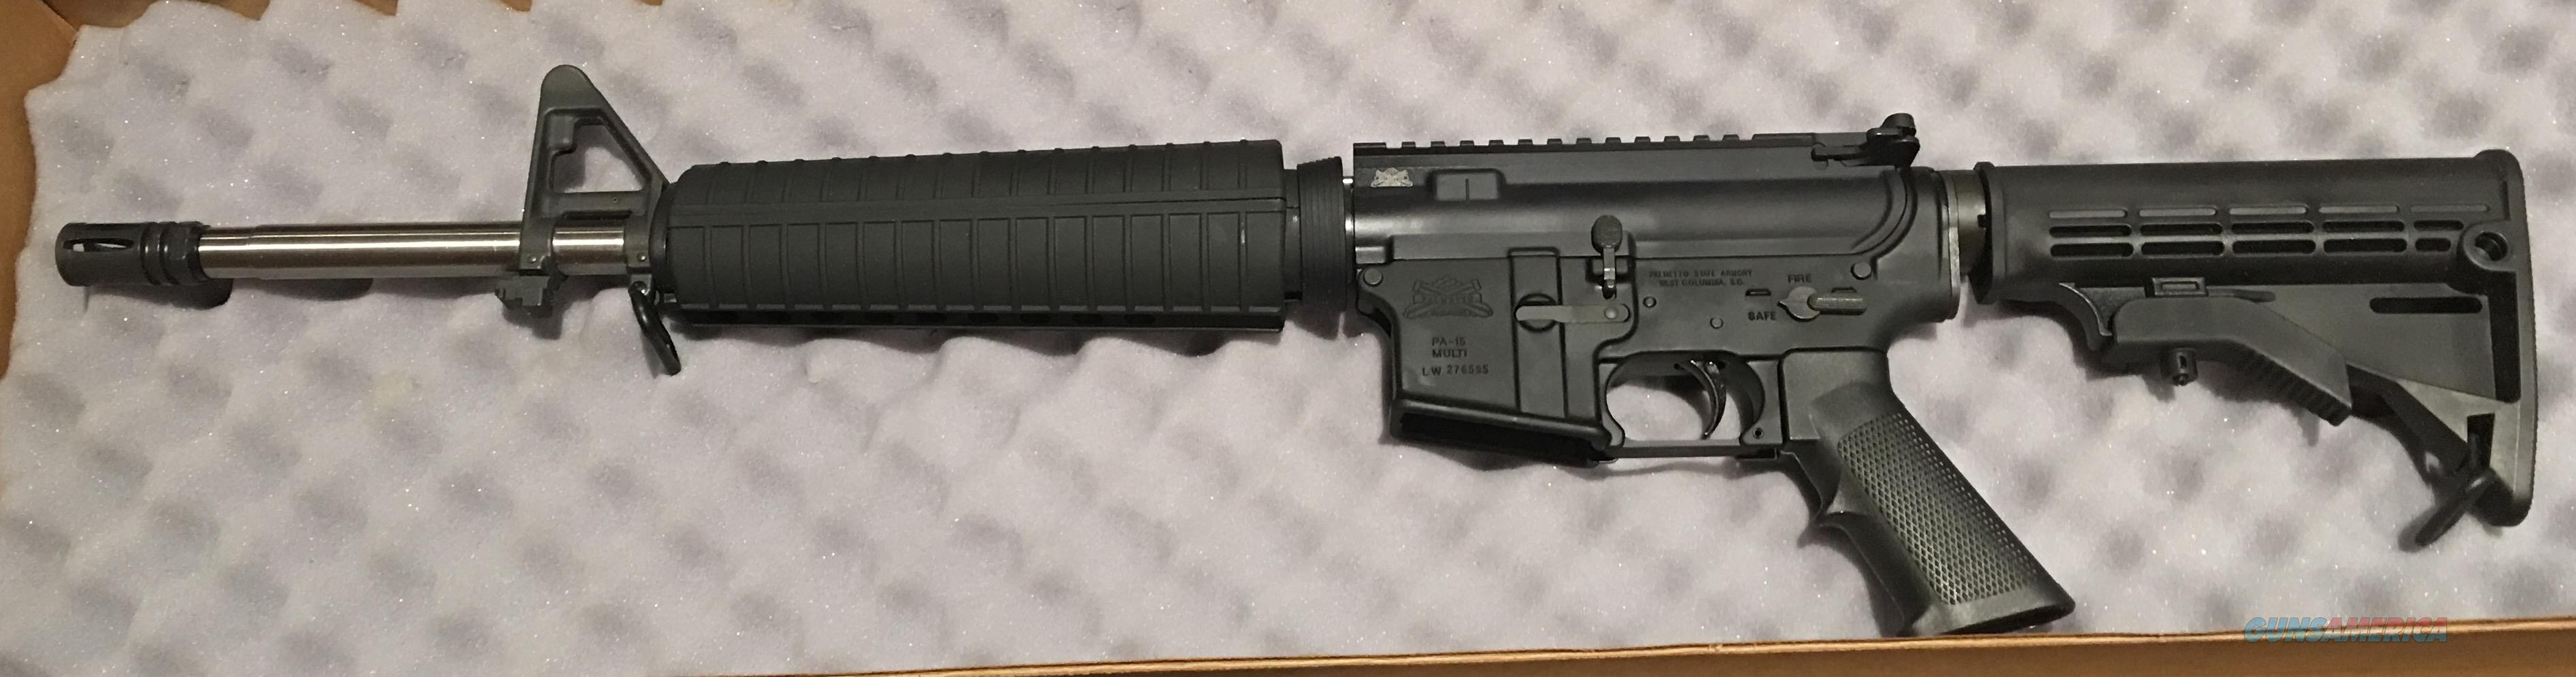 Palmetto State Armory 5.56 / REDUCED   Guns > Rifles > AR-15 Rifles - Small Manufacturers > Complete Rifle